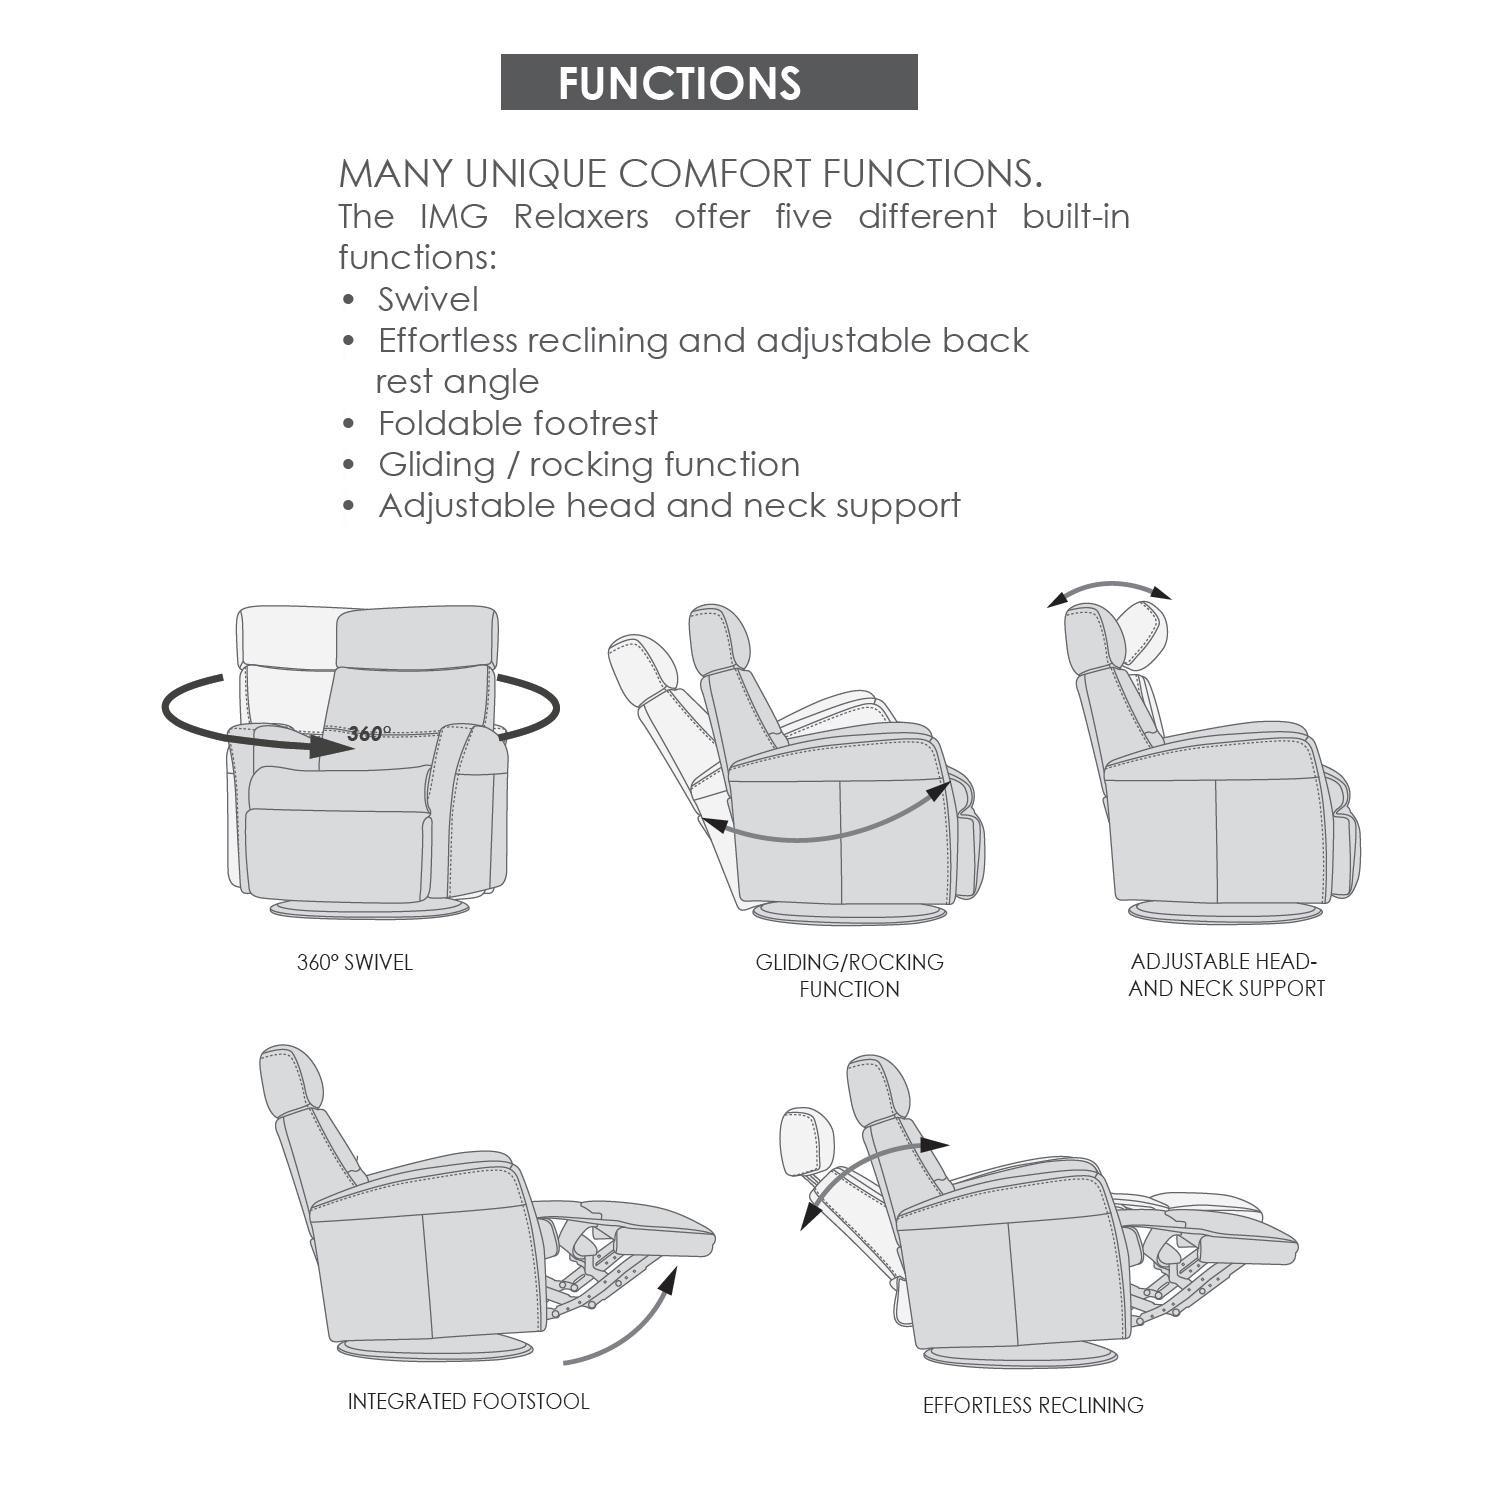 Divani Recliner Manuale Divani Compact Size Manual Recliner With Swivel Glide And Rock